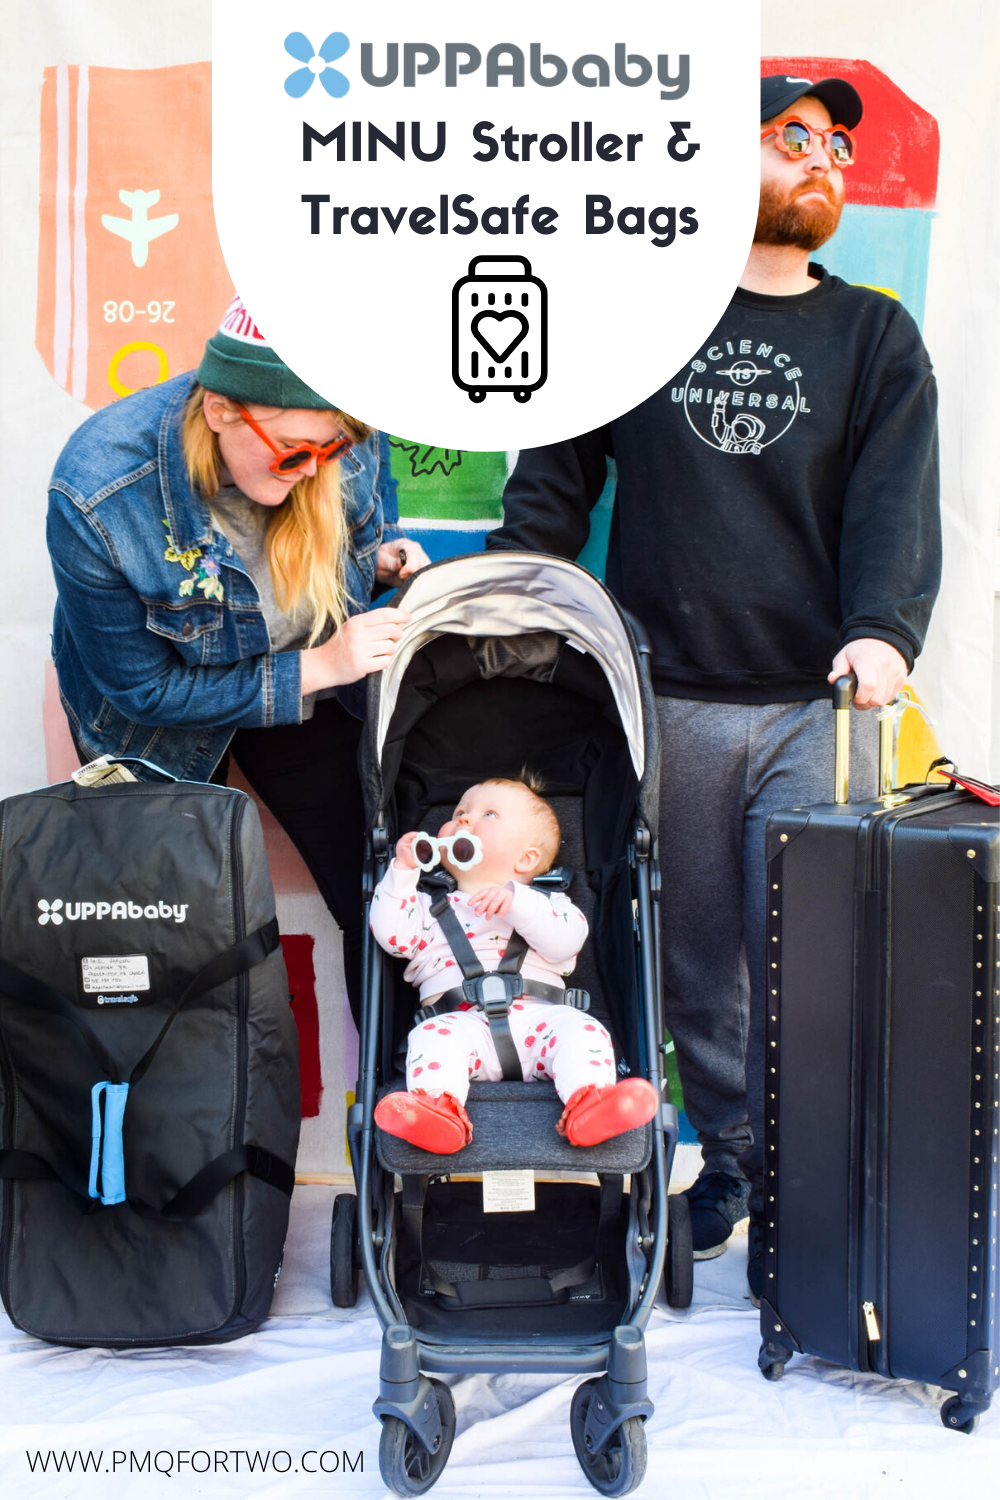 UPPAbaby MINU Stroller & TravelSafe Bag Review • PMQ for two